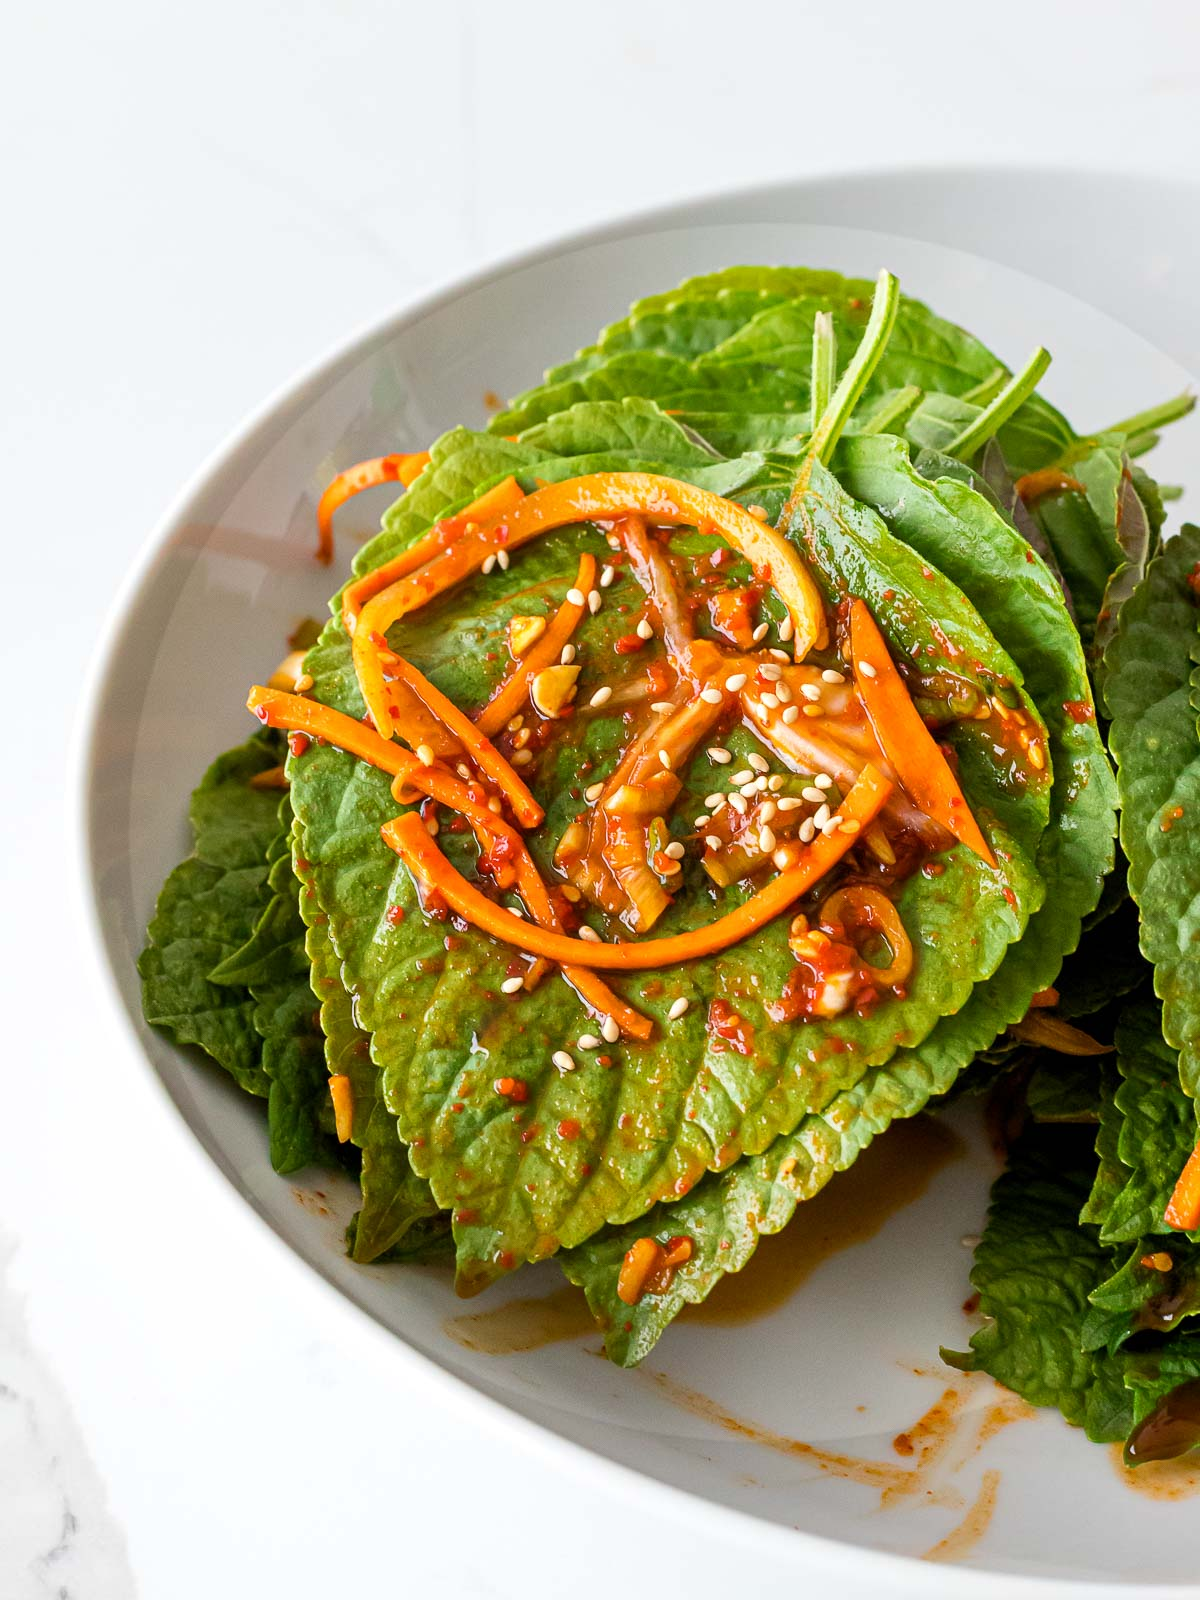 Korean perilla leaves marinated in a garlic soy sauce with shredded carrots